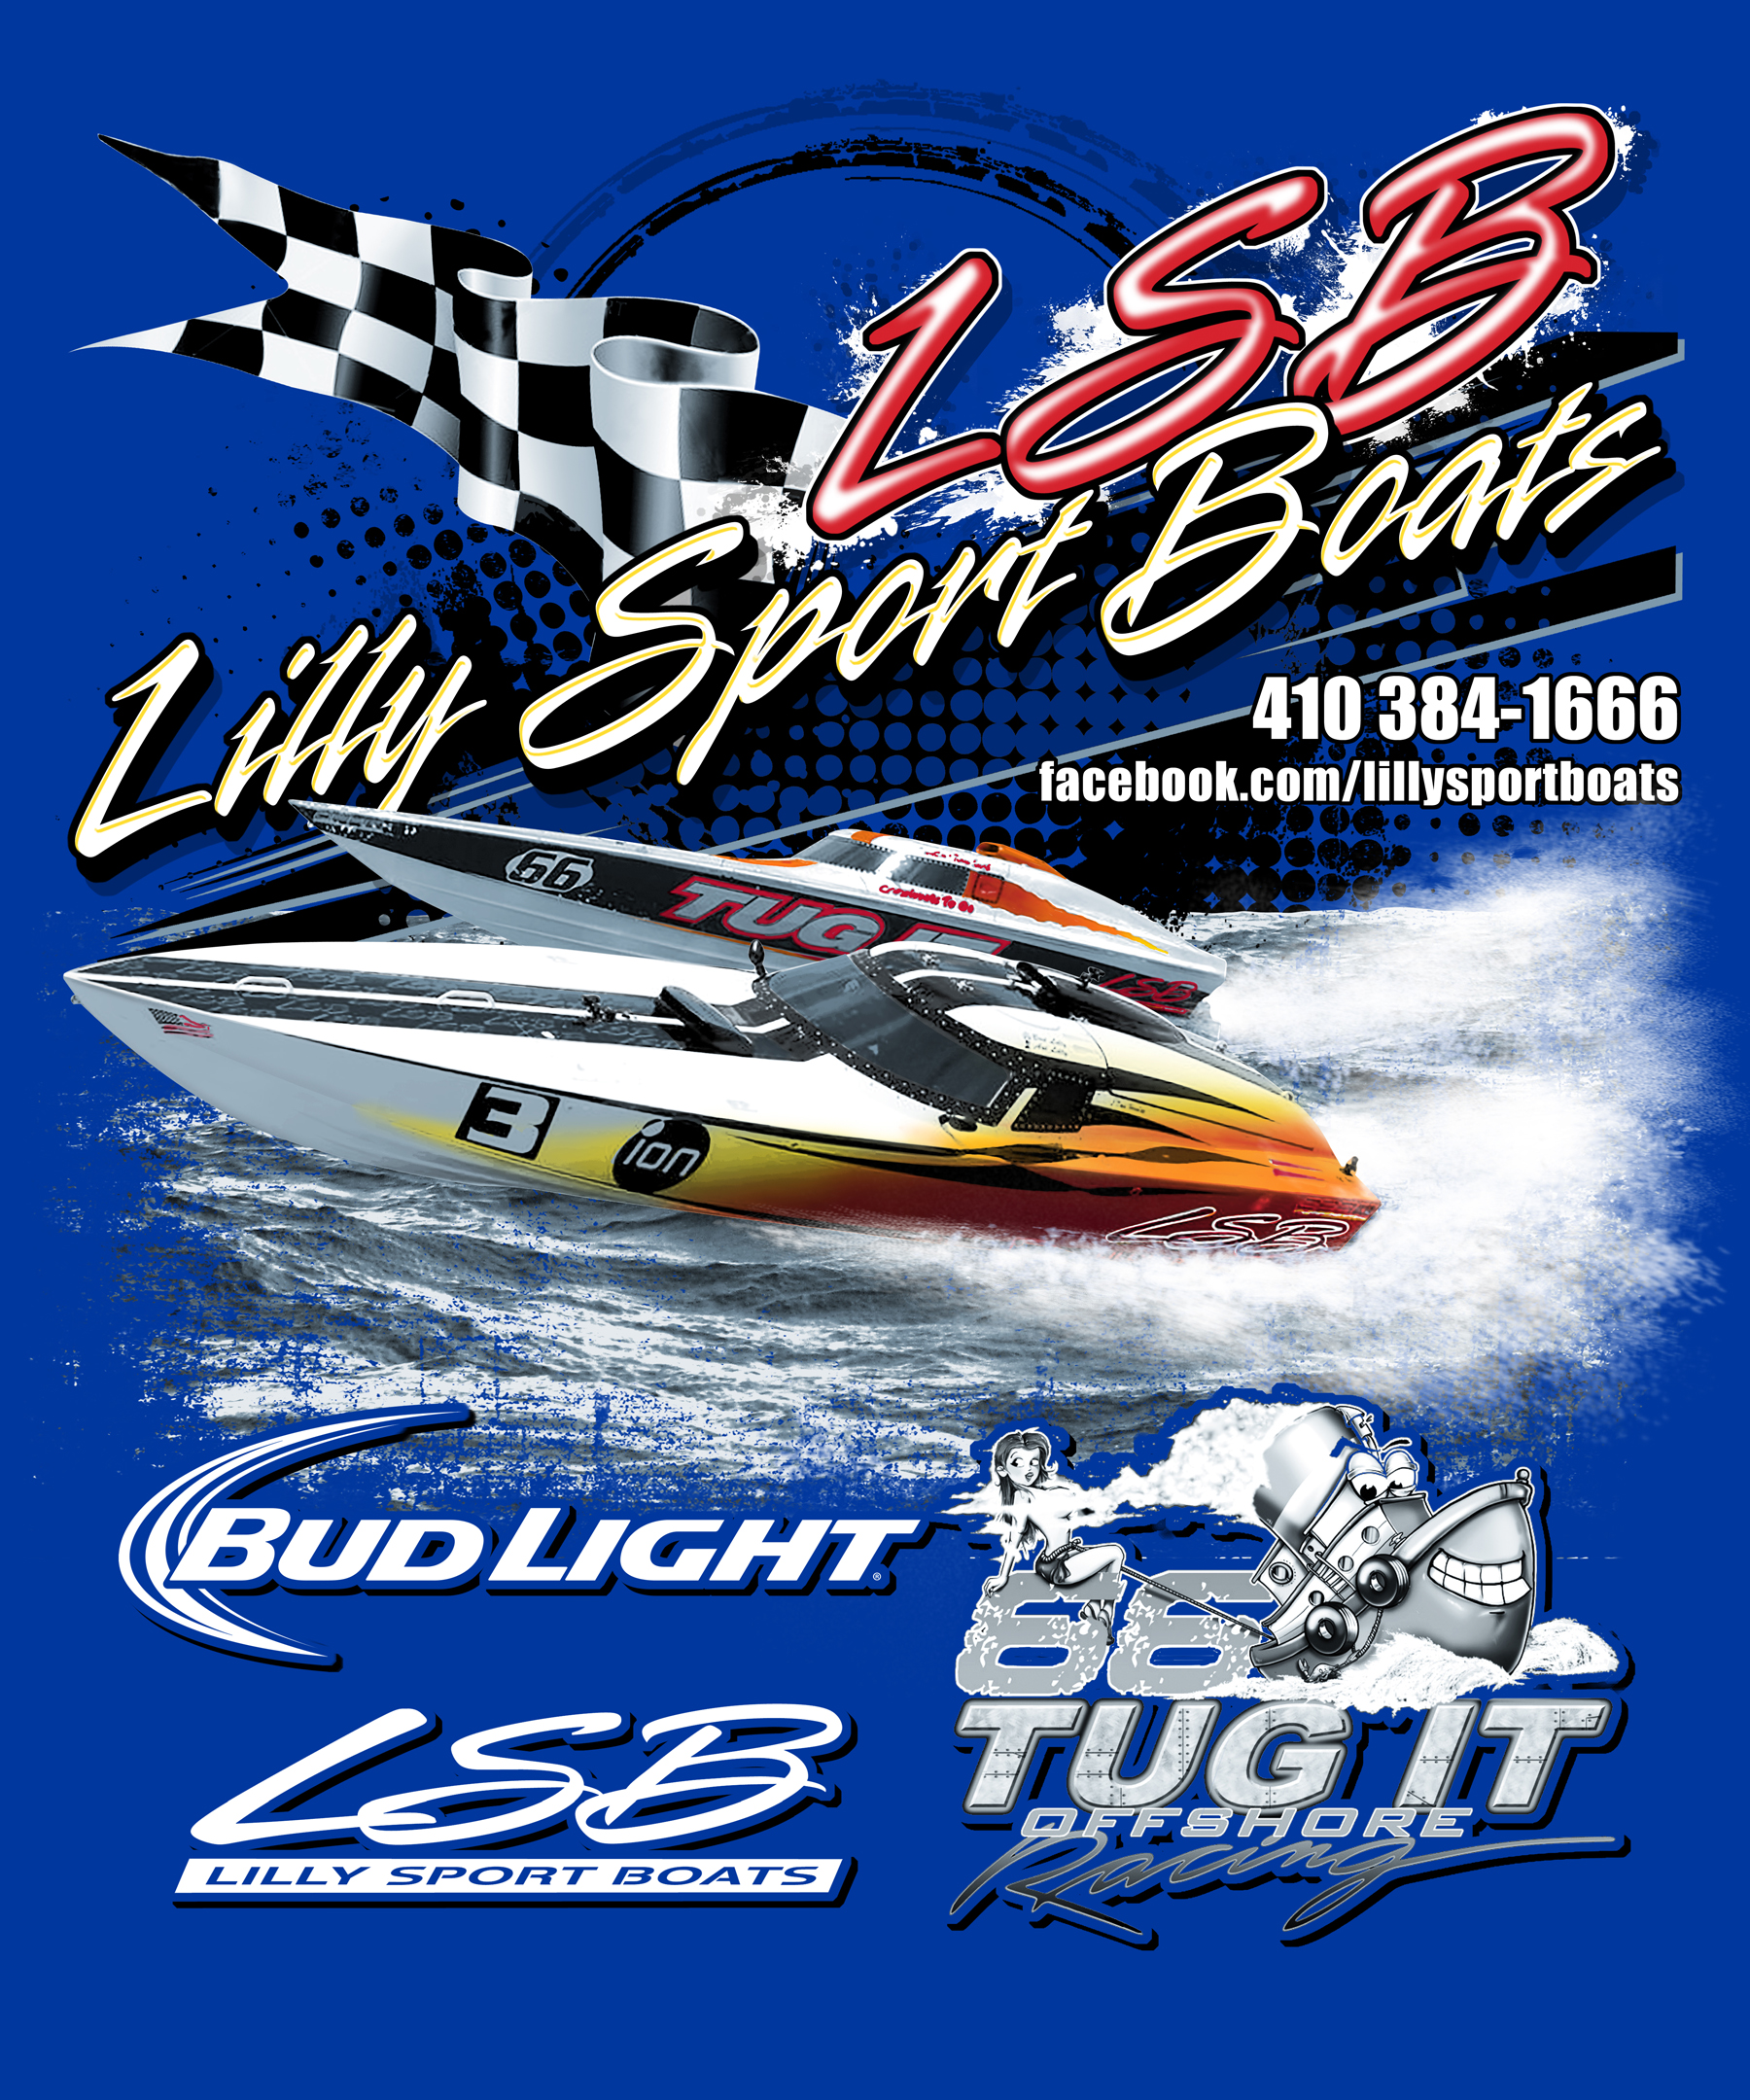 Lilly Sport Boats